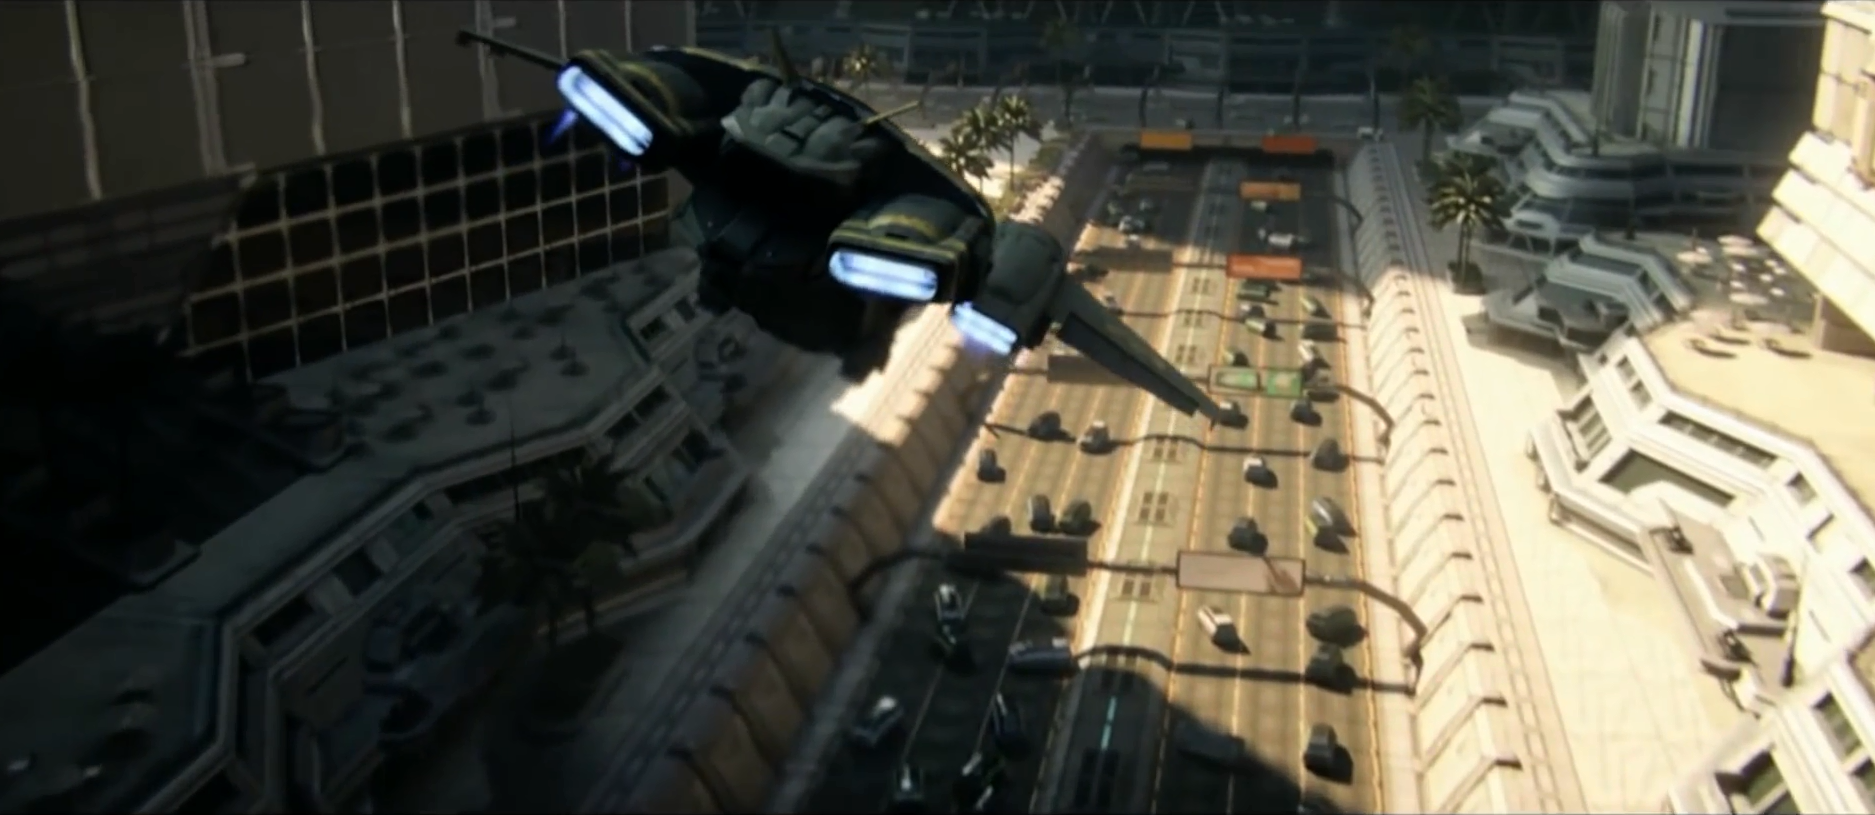 NEW PHOENIX INCIDENT - A UNSC Pelican flying over New Phoenix in the immediate aftermath of the firing of the Composer, July 2557.